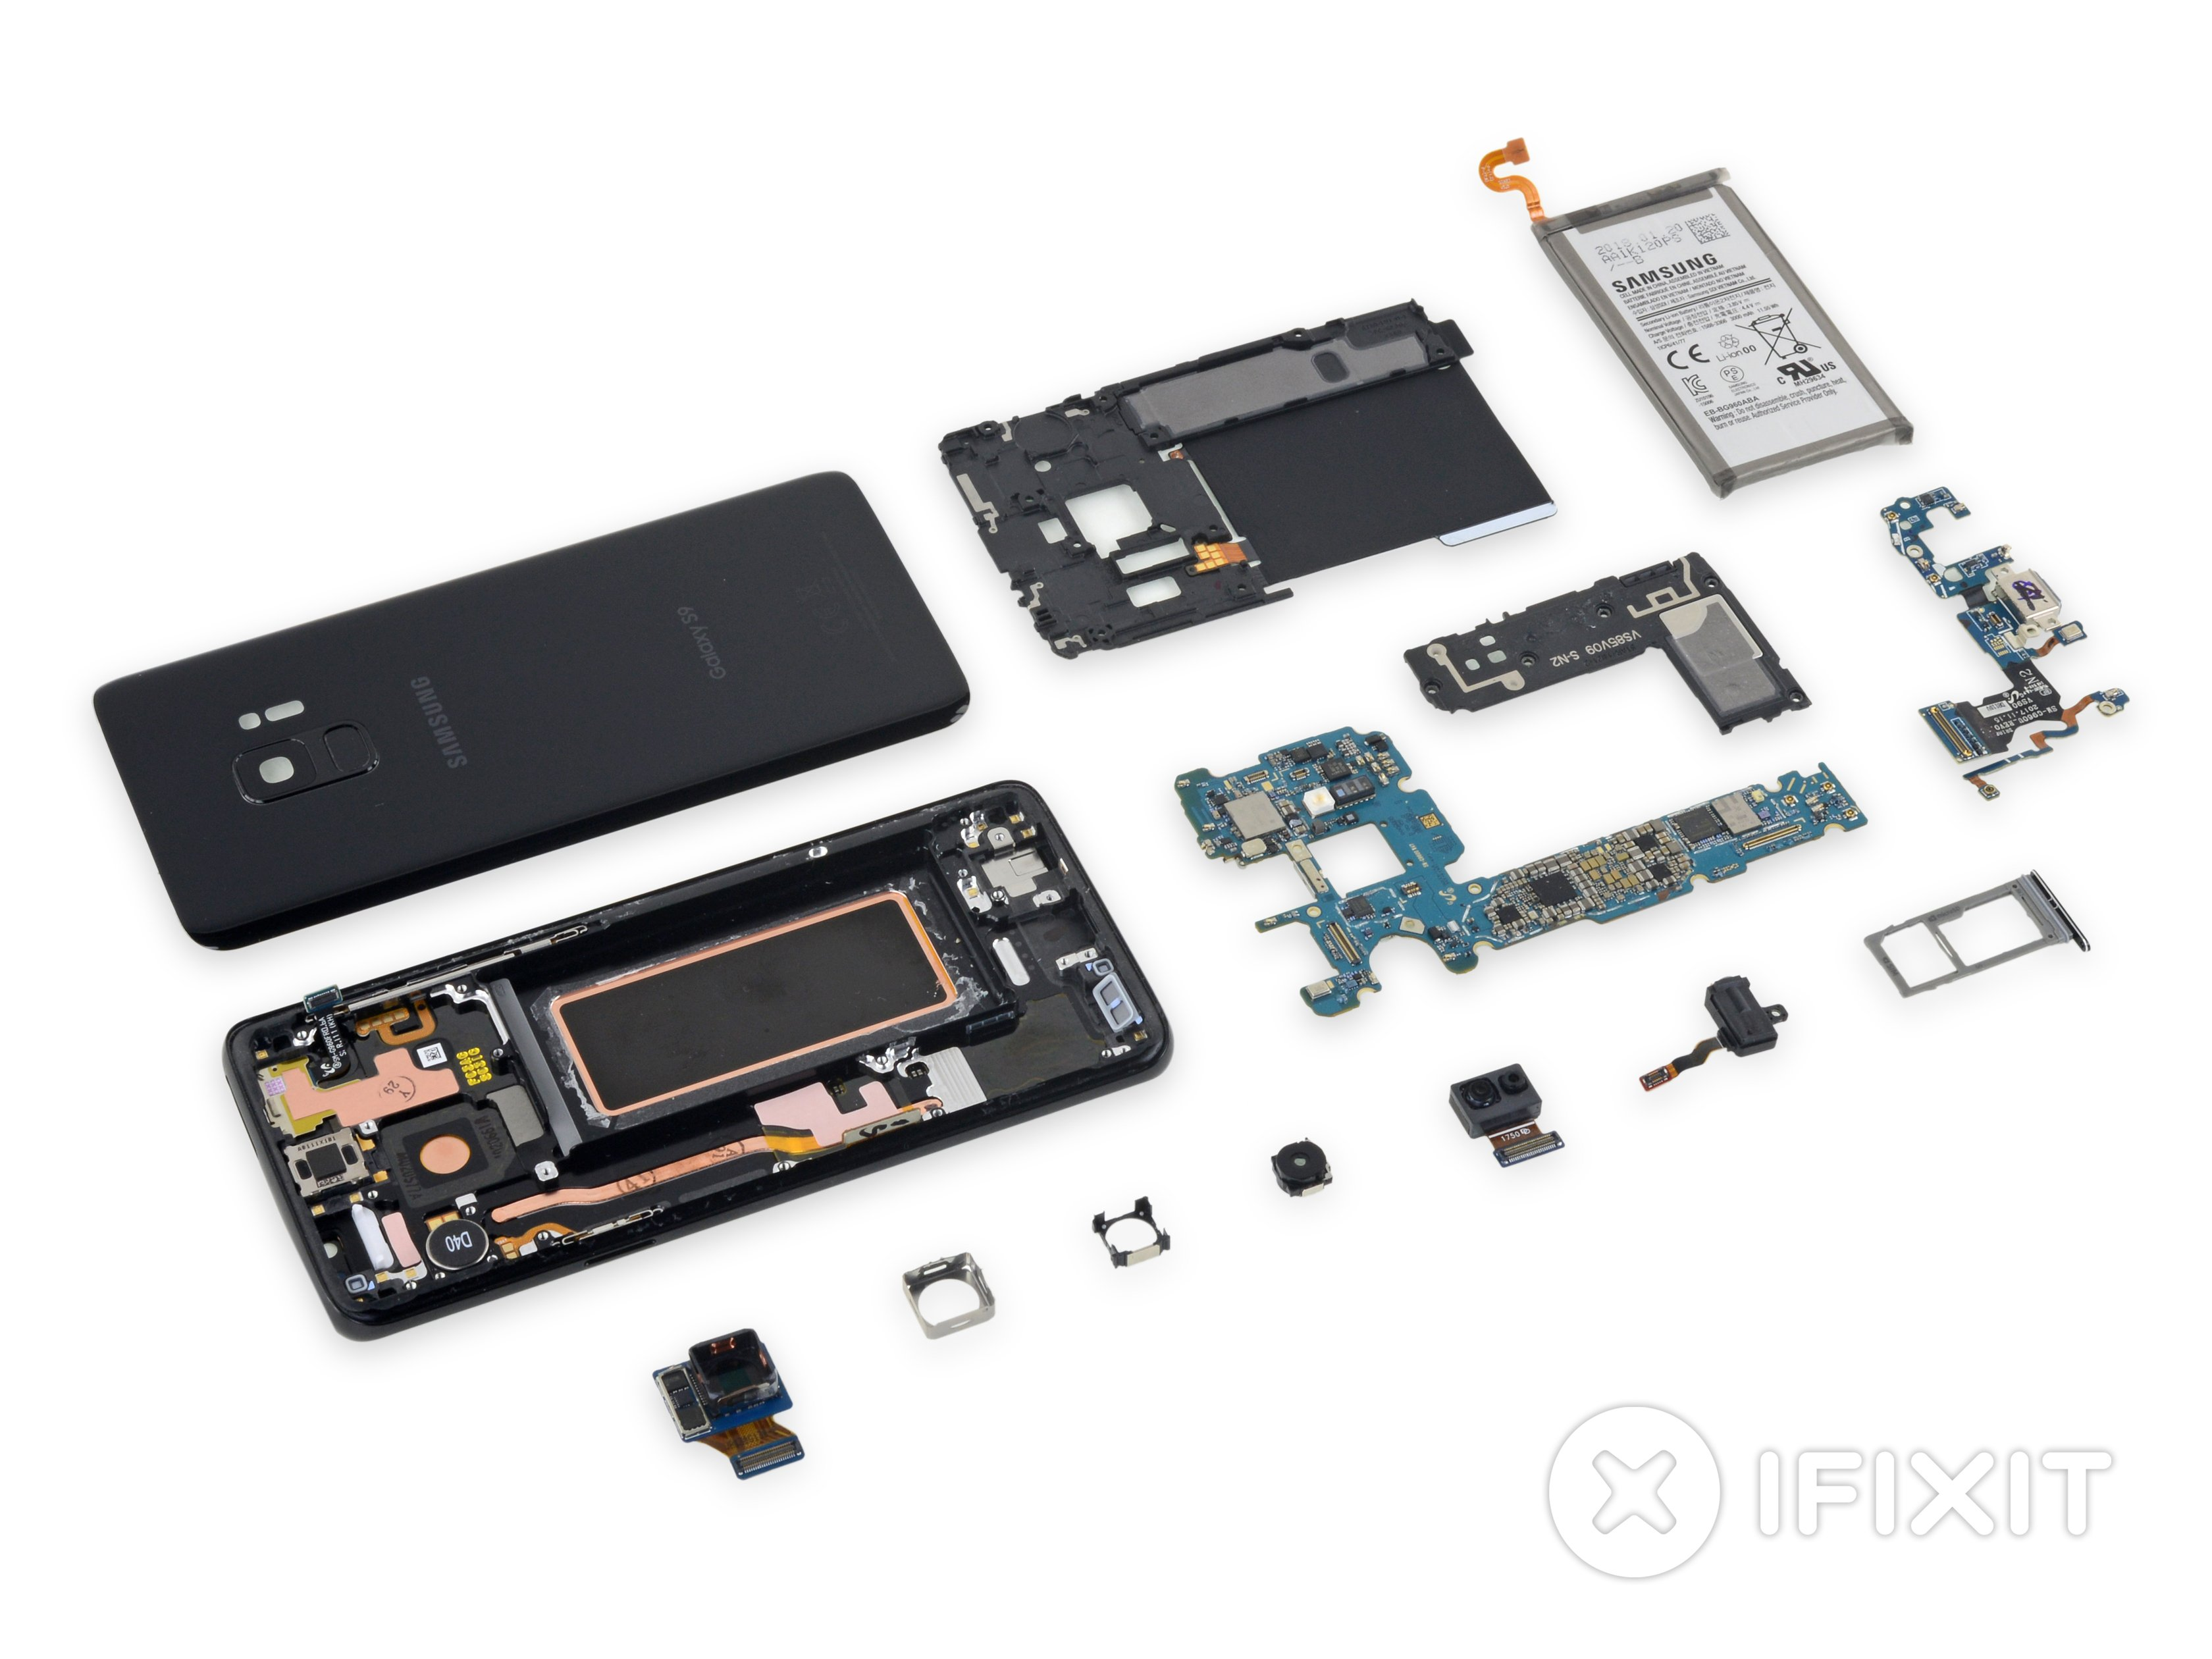 Samsung Galaxy S9 Teardown - iFixit